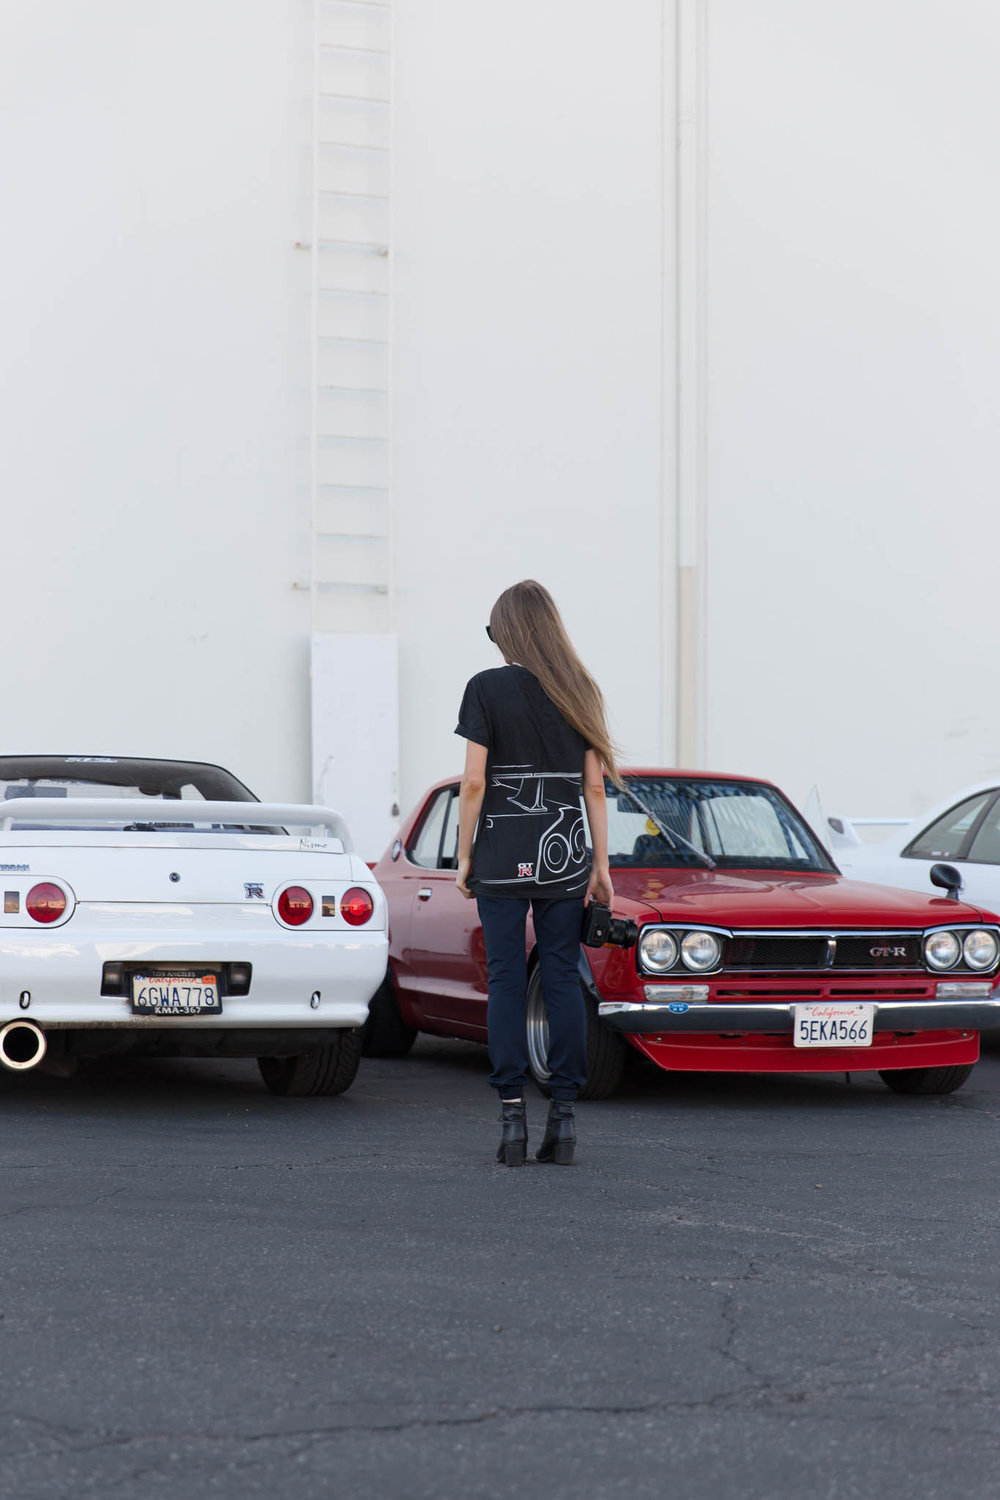 Stay_Driven_Skyline_Syndicate_Shoot_1-17.jpg